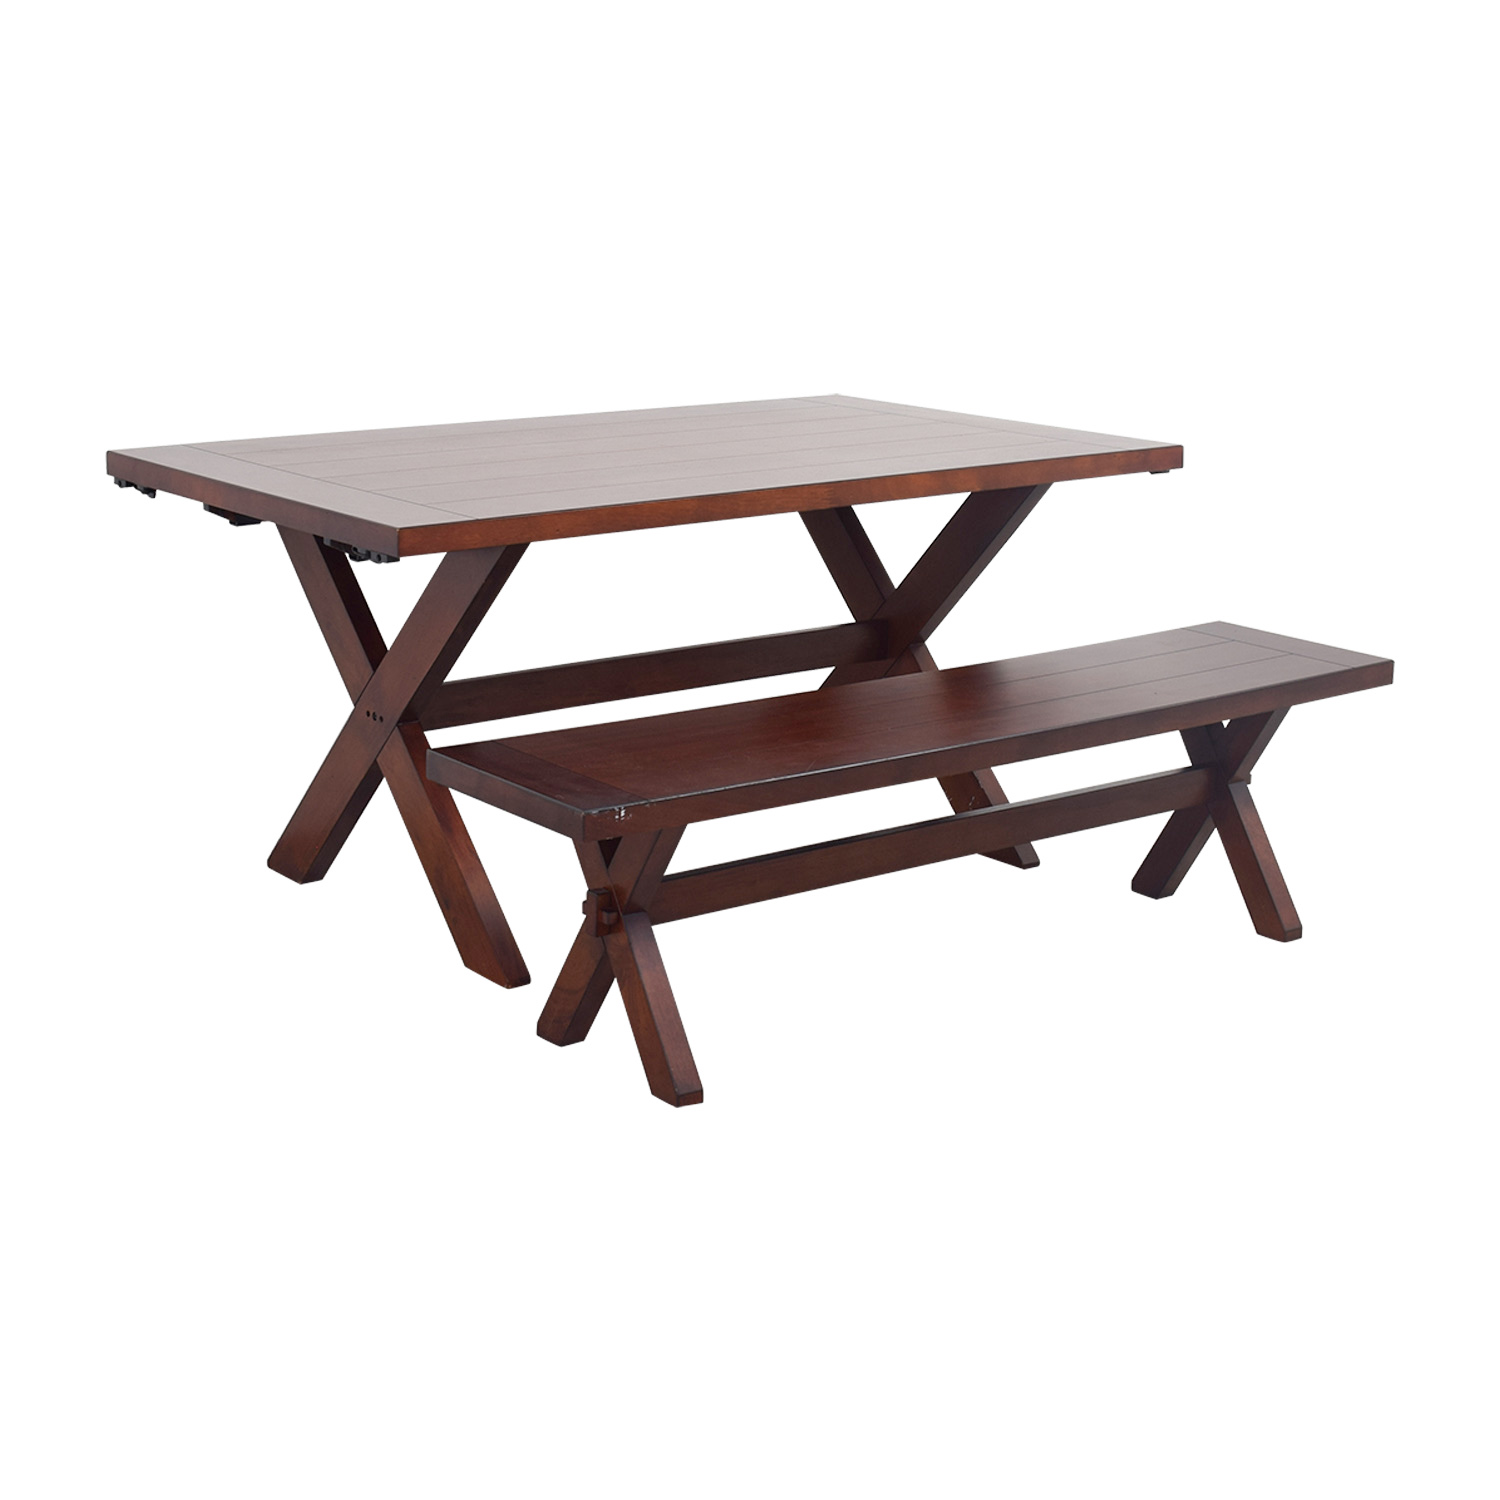 Fine 90 Off Pier 1 Pier 1 Imports Nolan Wood Dining Table With Bench Tables Ocoug Best Dining Table And Chair Ideas Images Ocougorg